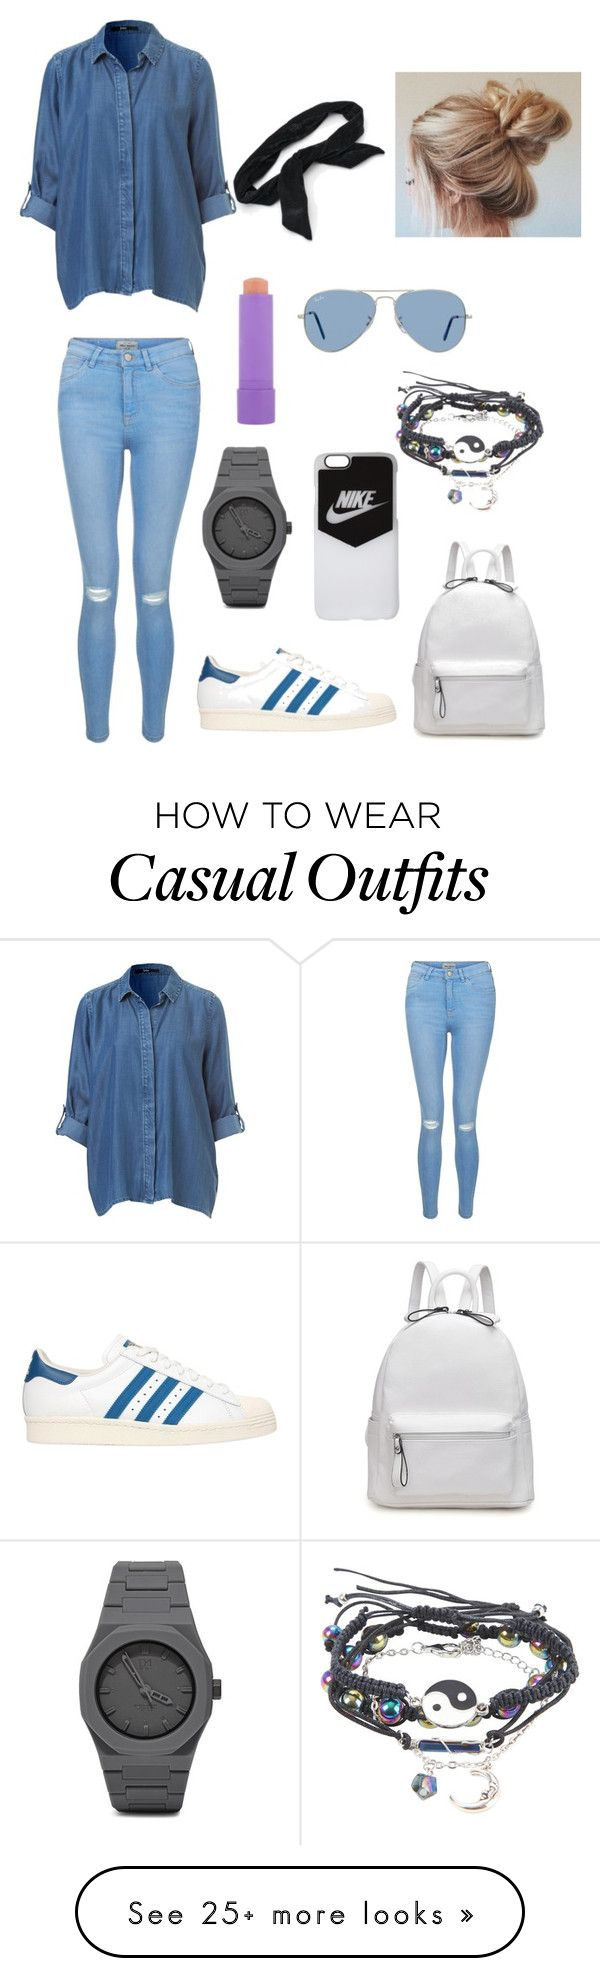 """Casual."" by annayagerber on Polyvore featuring New Look, adidas Originals, Ray-Ban, NIKE, Maybelline, CC and Candie's"